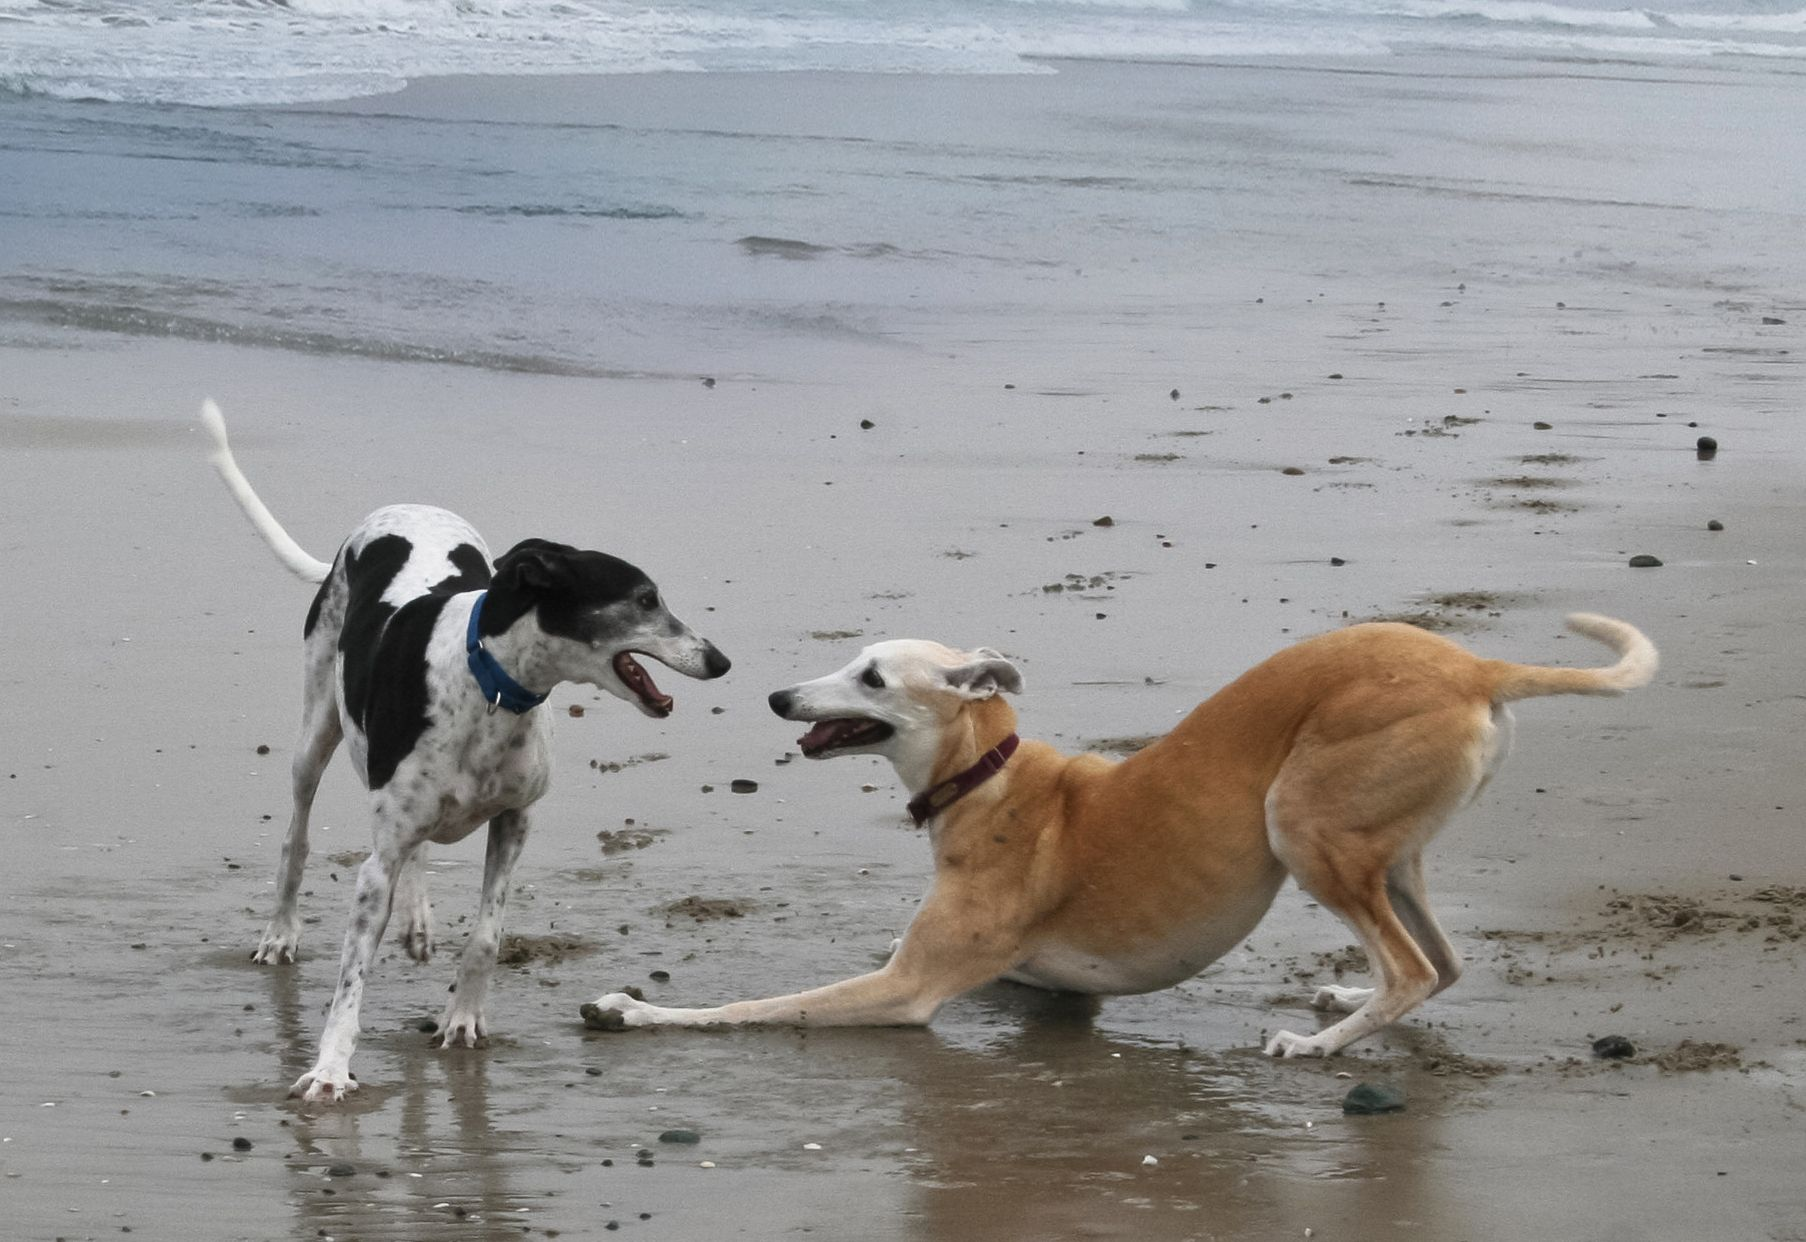 greyhound   Skechers, the Super Bowl and Greyhounds